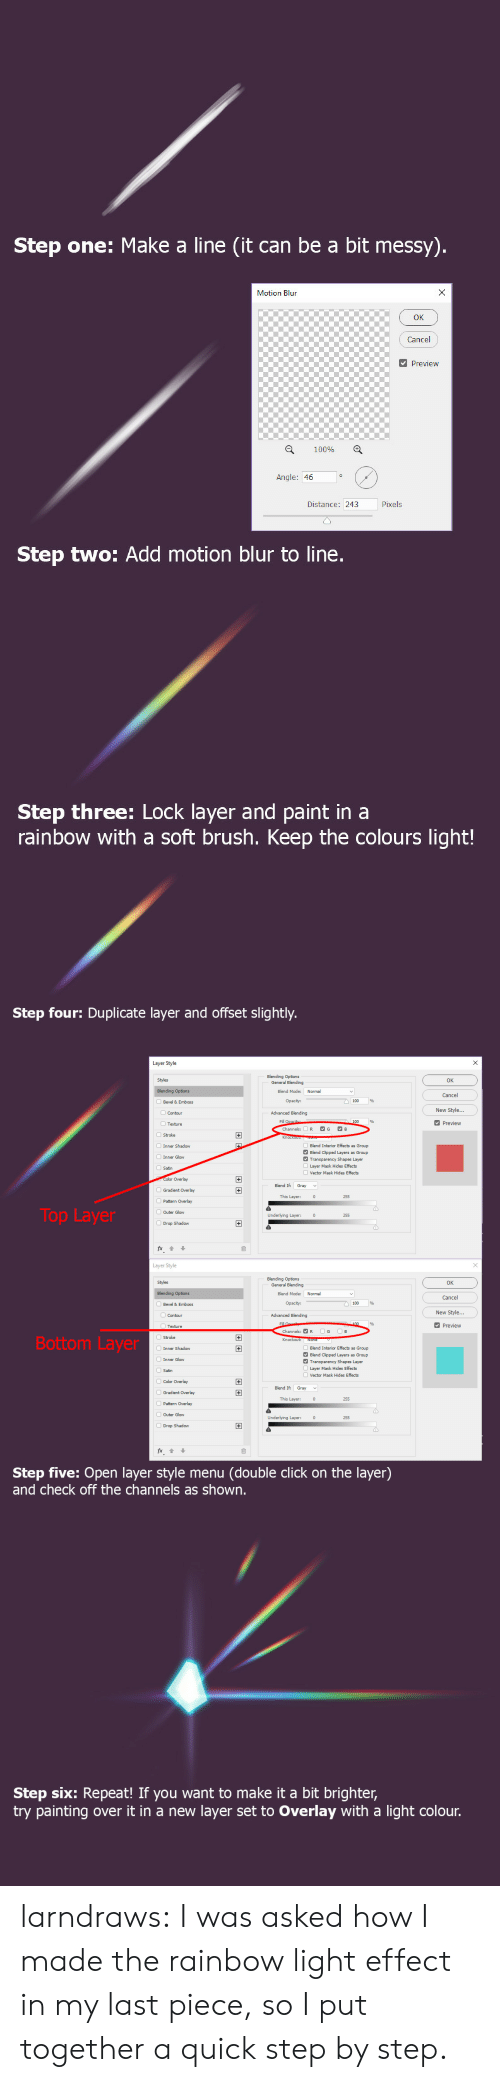 vector: Step one: Make a line (it can be a bit messy).  X  Motion Blun  Cancel  Preview  100%  Angle: 46  Pixels  Distance: 243  Step two: Add motion blur to line.  Step three: Lock layer and paint in a  rainbow with a soft brush. Keep the colours light!   Step four: Duplicate layer and offset slightly.  Layer Style  Blending Options  General Blending  Styles  OK  Blending Options  Blend Mode:  Normal  Cancel  Opacity:  Bevel & Emboss  New Style...  Advanced Blending  Contour  Fill Opacib  Channels:  Preview  Texture  G  B  R  +  Stroke  Inner Shadow  Blend Interior Effects  Blend Clipped Layers  Transparency Shapes Layer  s Group  Group  Inner Glow  Layer Mask Hides Effects  Satin  Vector Mask Hides Effects  Color Overlay  +  Blend If  Gray  Gradient Overlay  This Layer:  255  Pattern Overlay  Top Layer  OOuter Glow  Underlying Layer:  255  Drop Shadow  Layer Style  Blending Options  General Blending  Styles  OK  Normal  Blending Options  Blend Mode:  Cancel  Opacity:  Bevel & Emboss  New Style...  Advanced Blending  Contour  Fill  100  Preview  Texture  G  B  Channels: R  Bottom Layer  Knockout: None  Inner Shadow  Blend Interior Effects  Blend Clipped Layers  Transparency Shapes Layer  Layer Mask Hides Effects  +  s Group  Group  Inner Glow  Satin  Vector Mask Hides Effects  Color Overlay  +  Blend If  Gradient Overlay  +  This Layer:  255  Pattern Overlay  Outer Glow  Underlying Layer:  255  Drop Shadow  fx  Step five: Open layer style menu  and check off the channels as shown.  (double click on the layer)   Step six: Repeat! If you want to make it a bit brighter,  try painting  layer set to Overlay with a light colour.  over it in a new larndraws:  I was asked how I made the rainbow light effect in my last piece, so I put together a quick step by step.